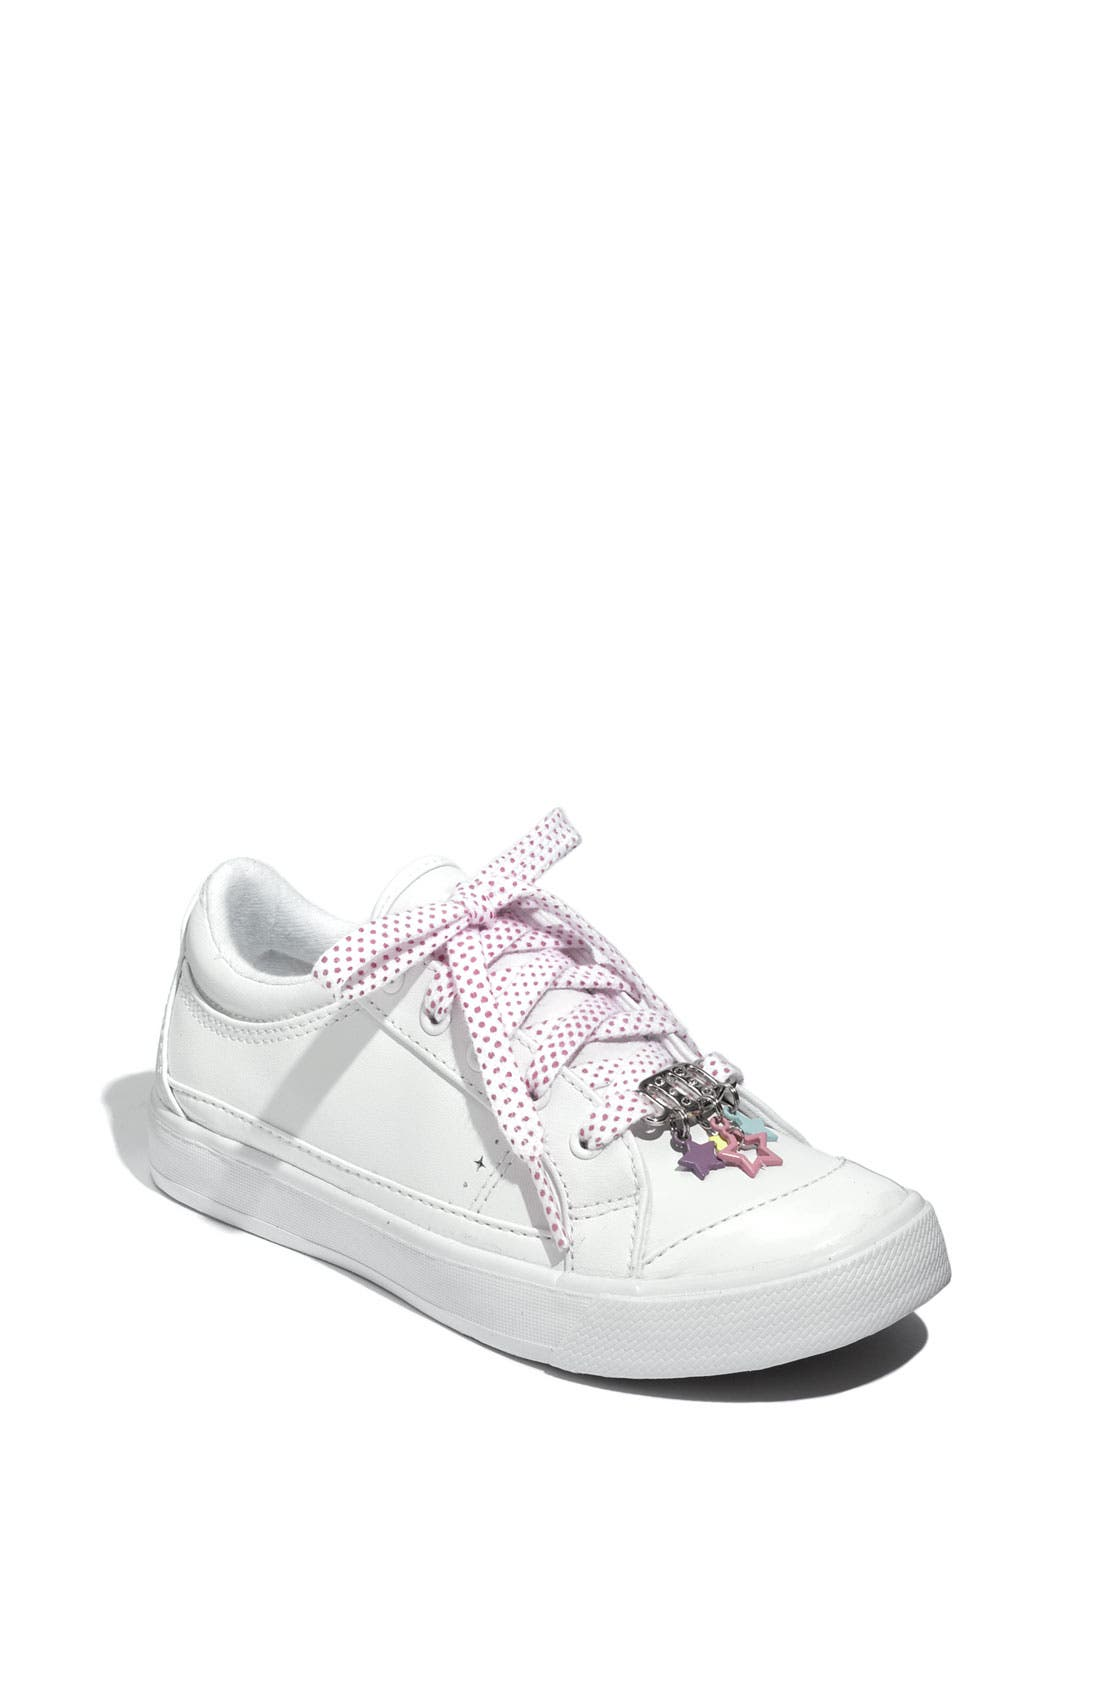 Alternate Image 1 Selected - Keds® 'Taylor' Lace Sneaker (Toddler, Little Kid & Big Kid)